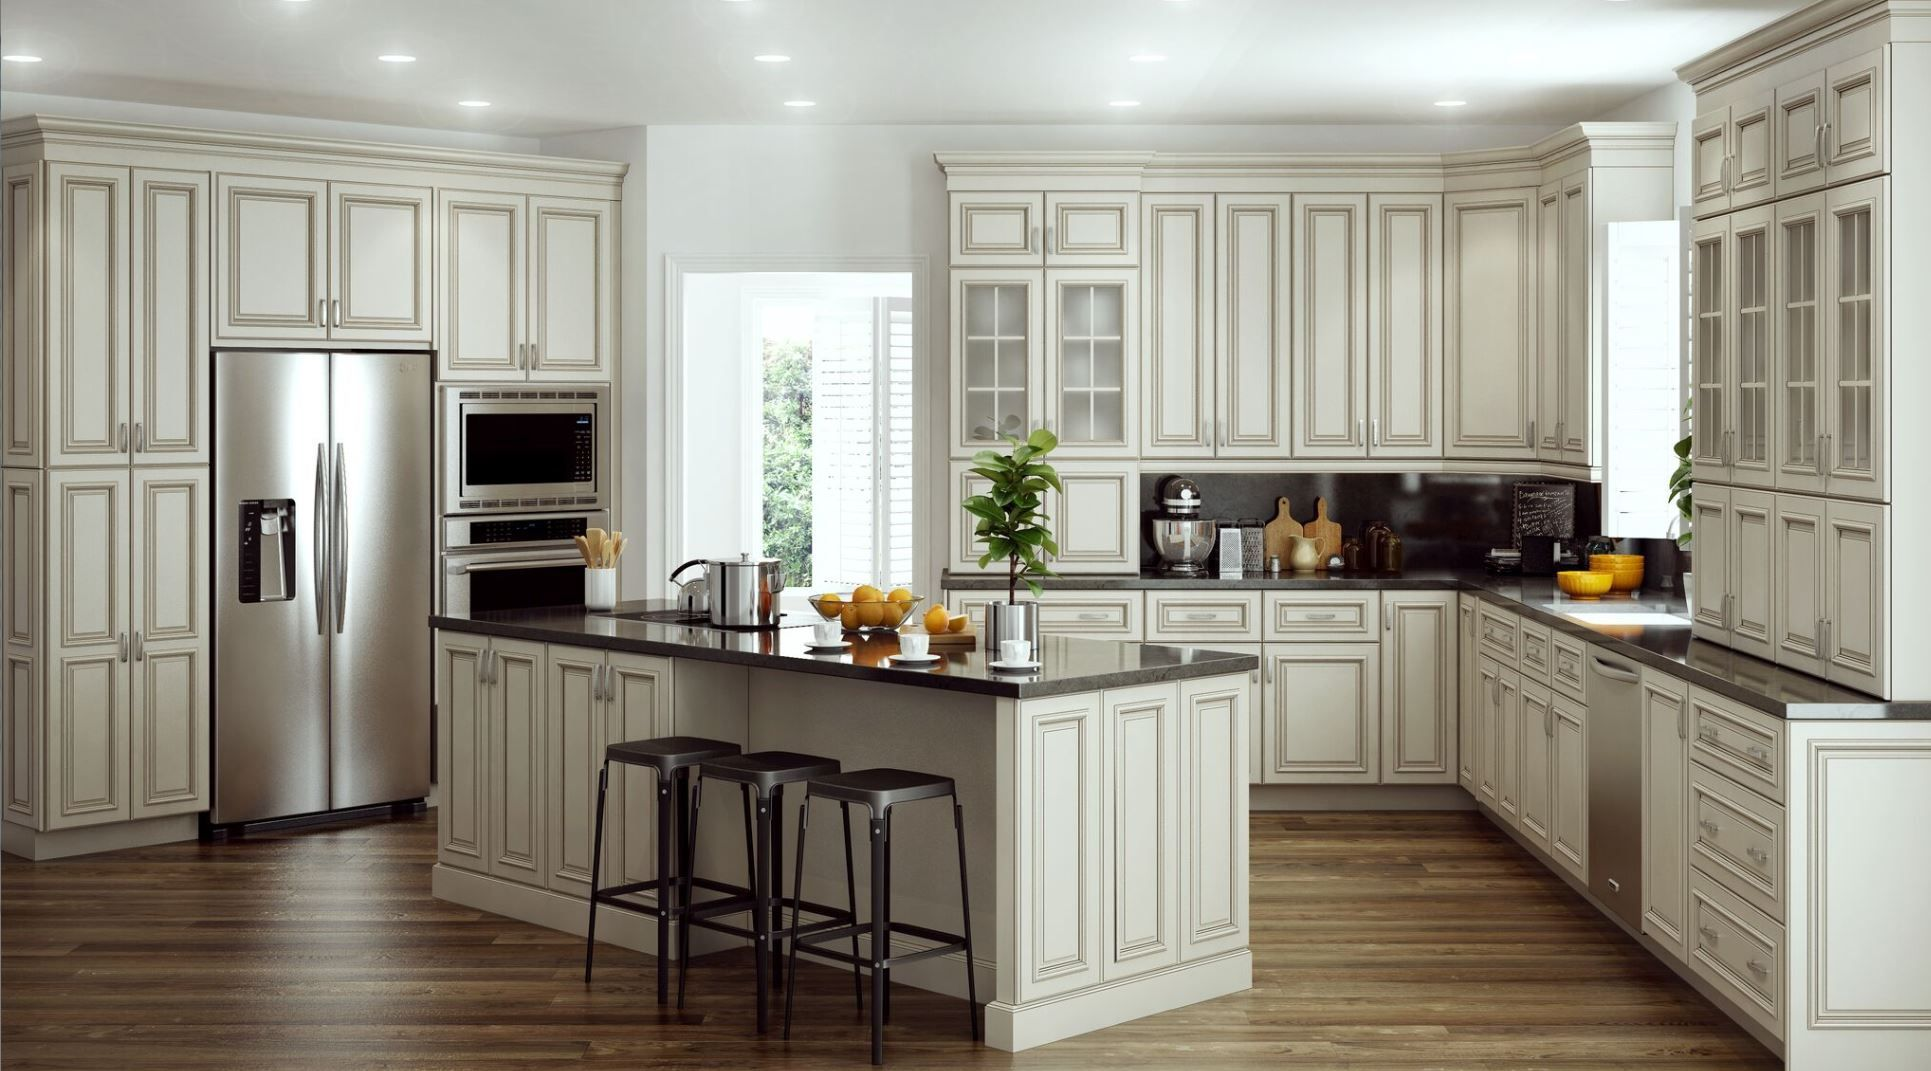 Shop Our Kitchen Cabinets Department To Customize Your Holden Base Cabinets In Bronze Glaz Home Depot Kitchen Beautiful Kitchen Cabinets Kitchen Remodel Trends